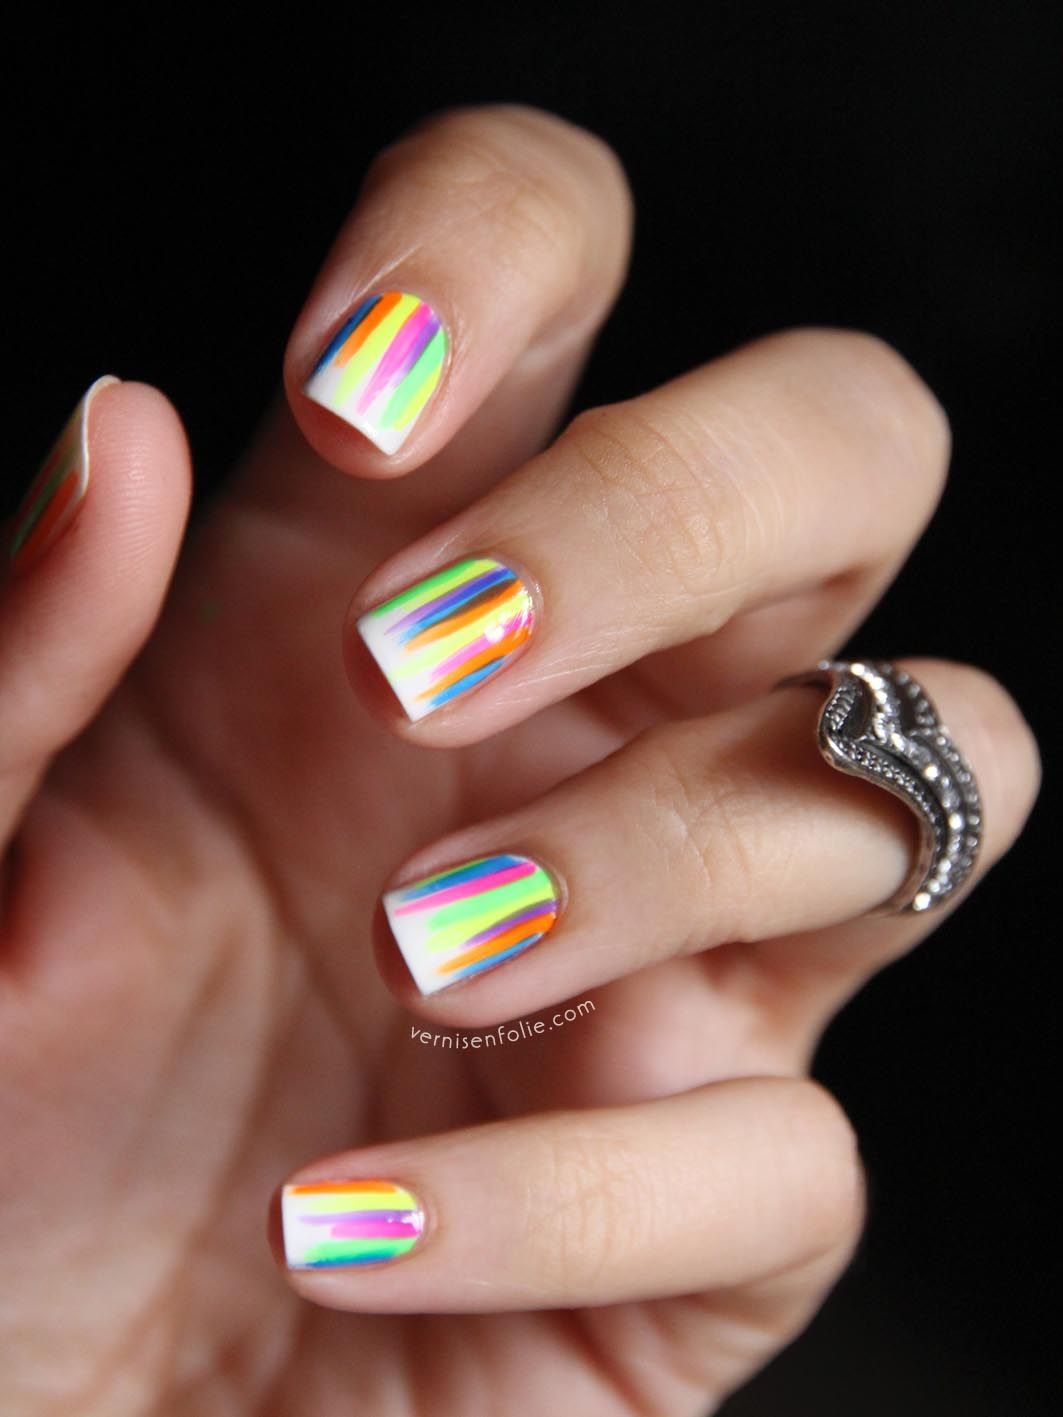 50 Easy Nail Designs | Neon, Neon nails and Nail manicure